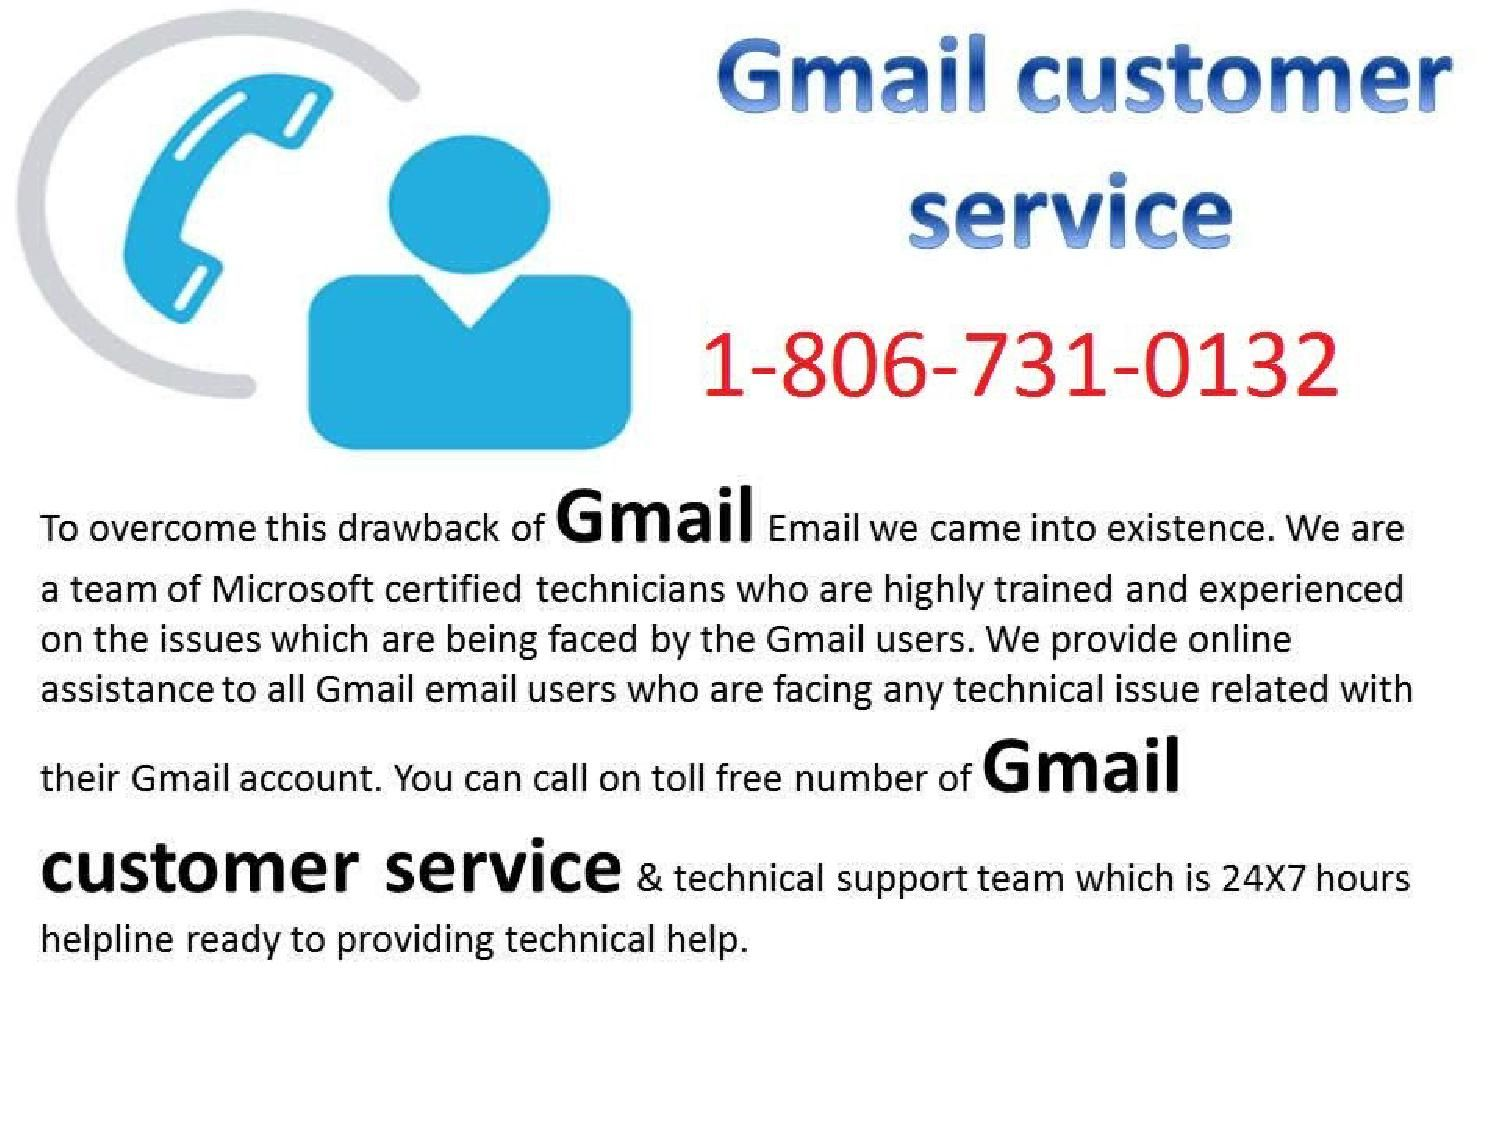 Best service for gmail customer care number 1 806 731 0132